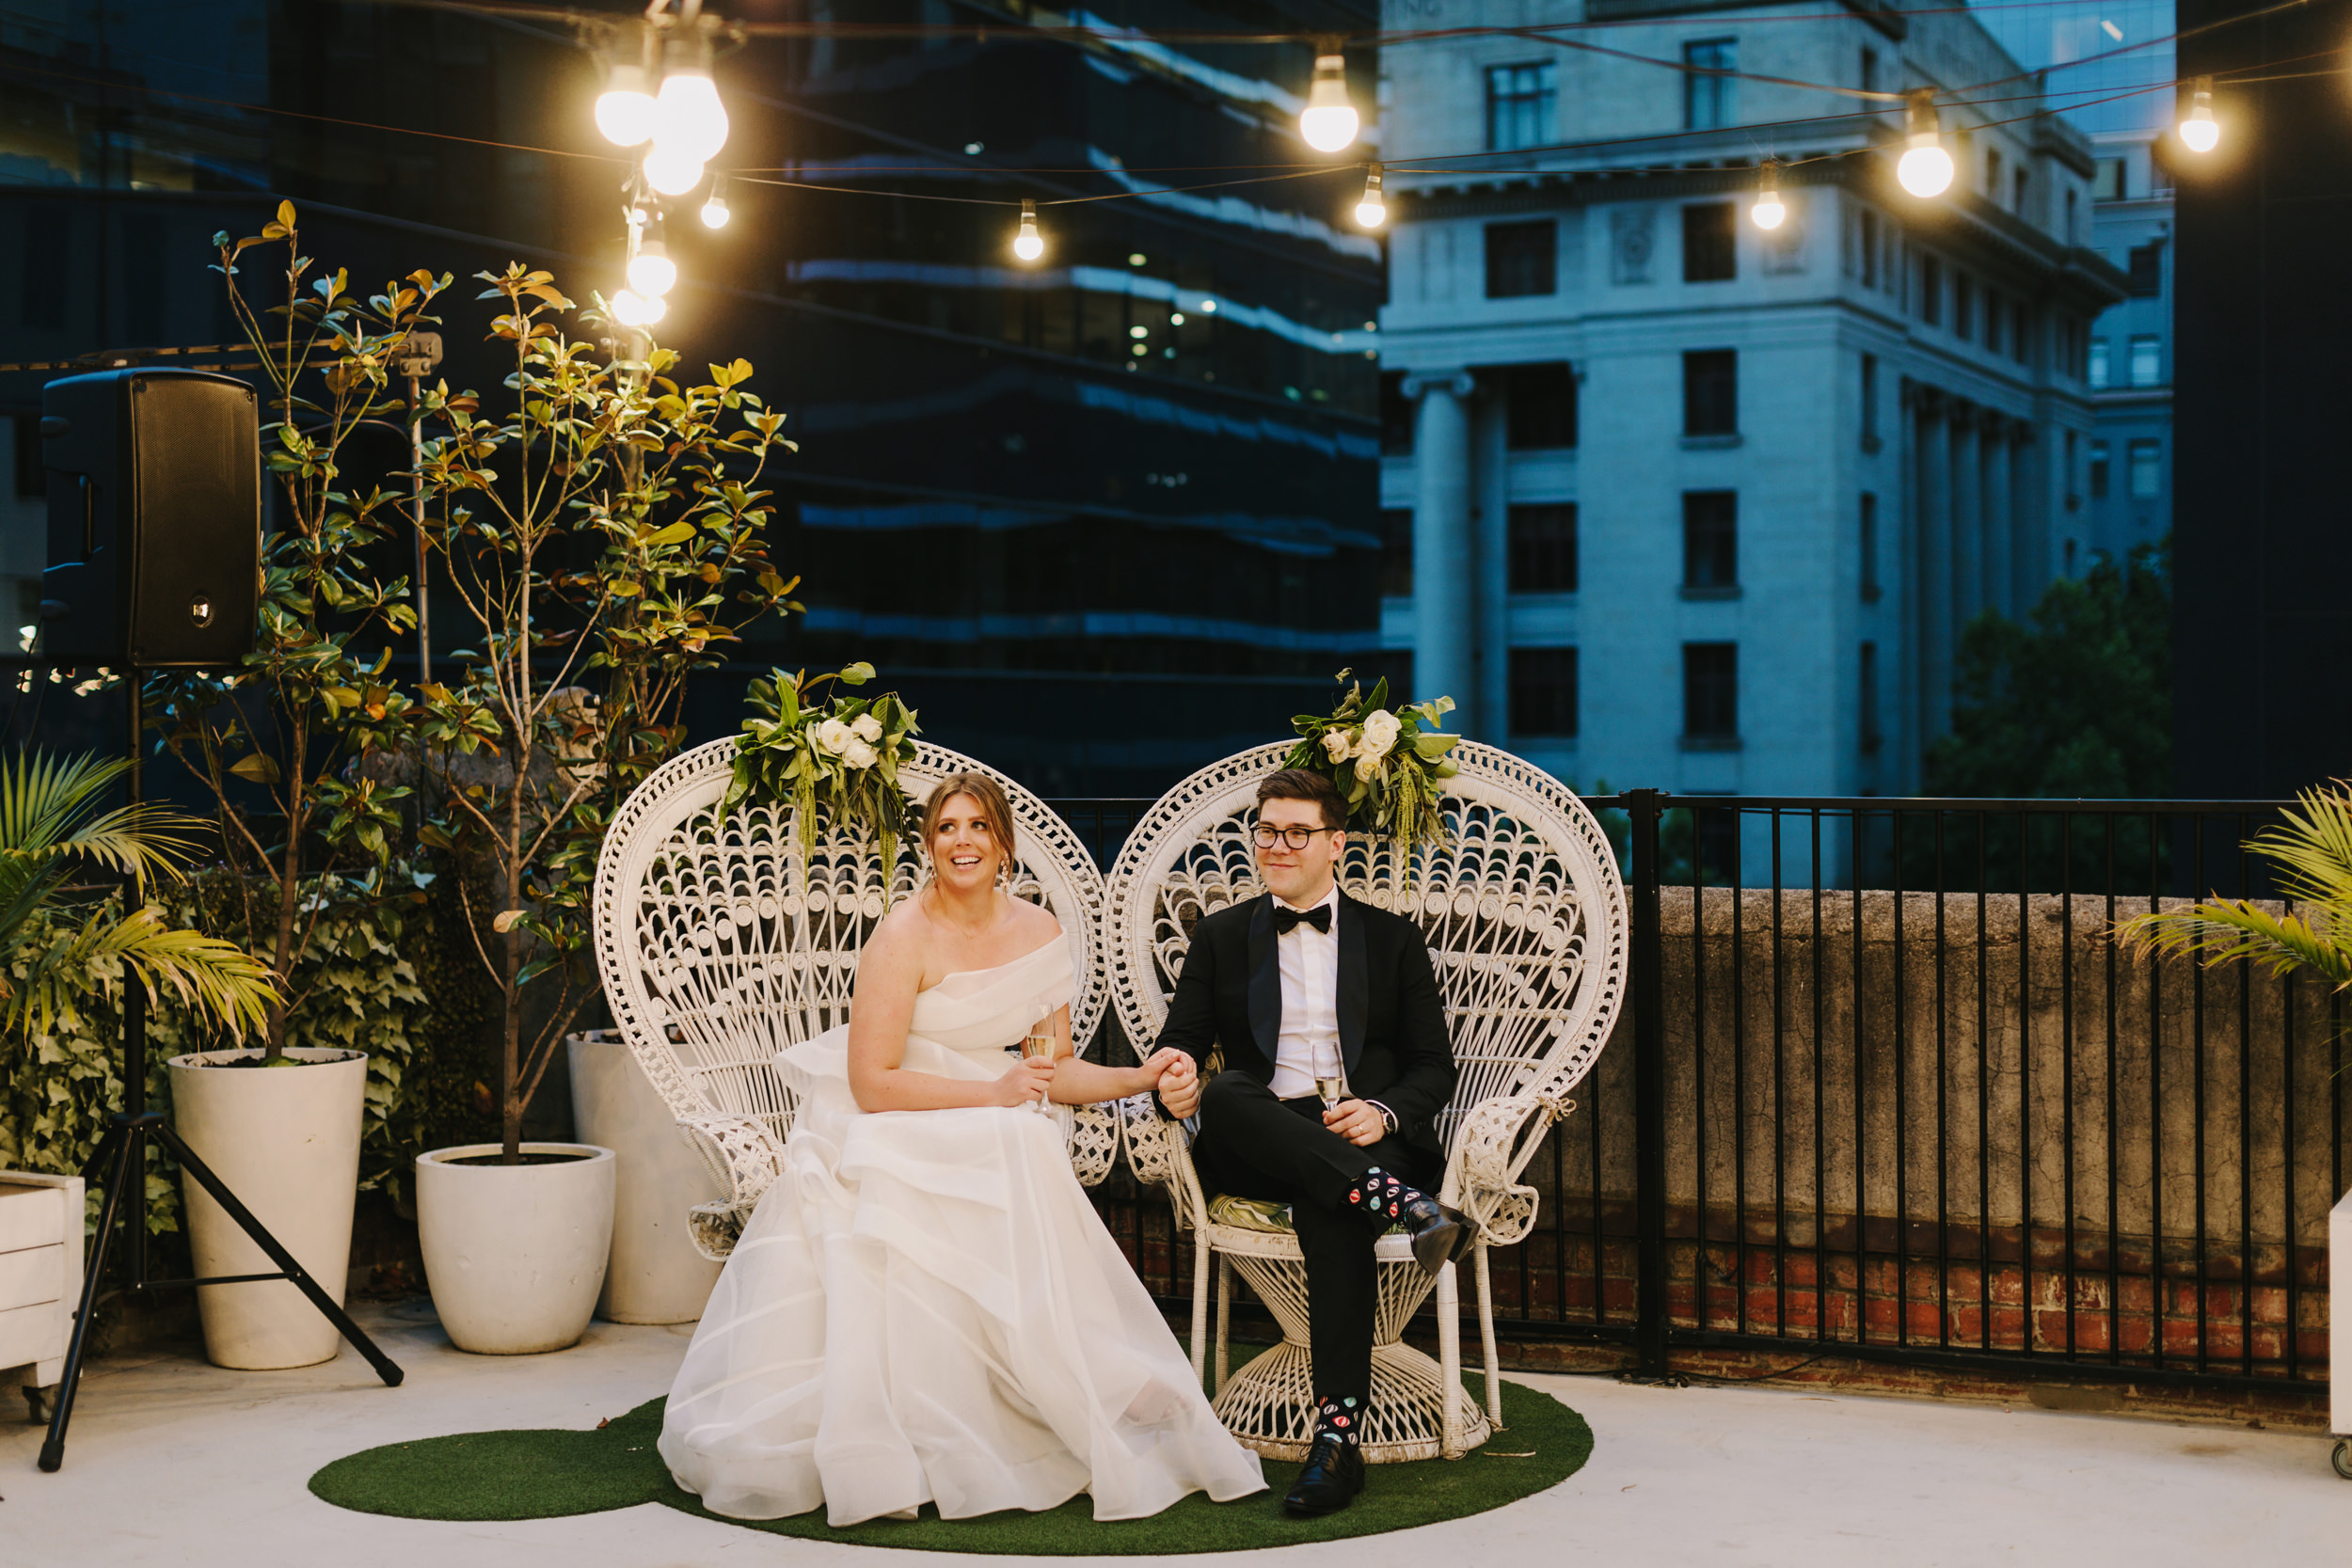 Melbourne_City_Rooftop_Wedding_Tyson_Brigette122.JPG